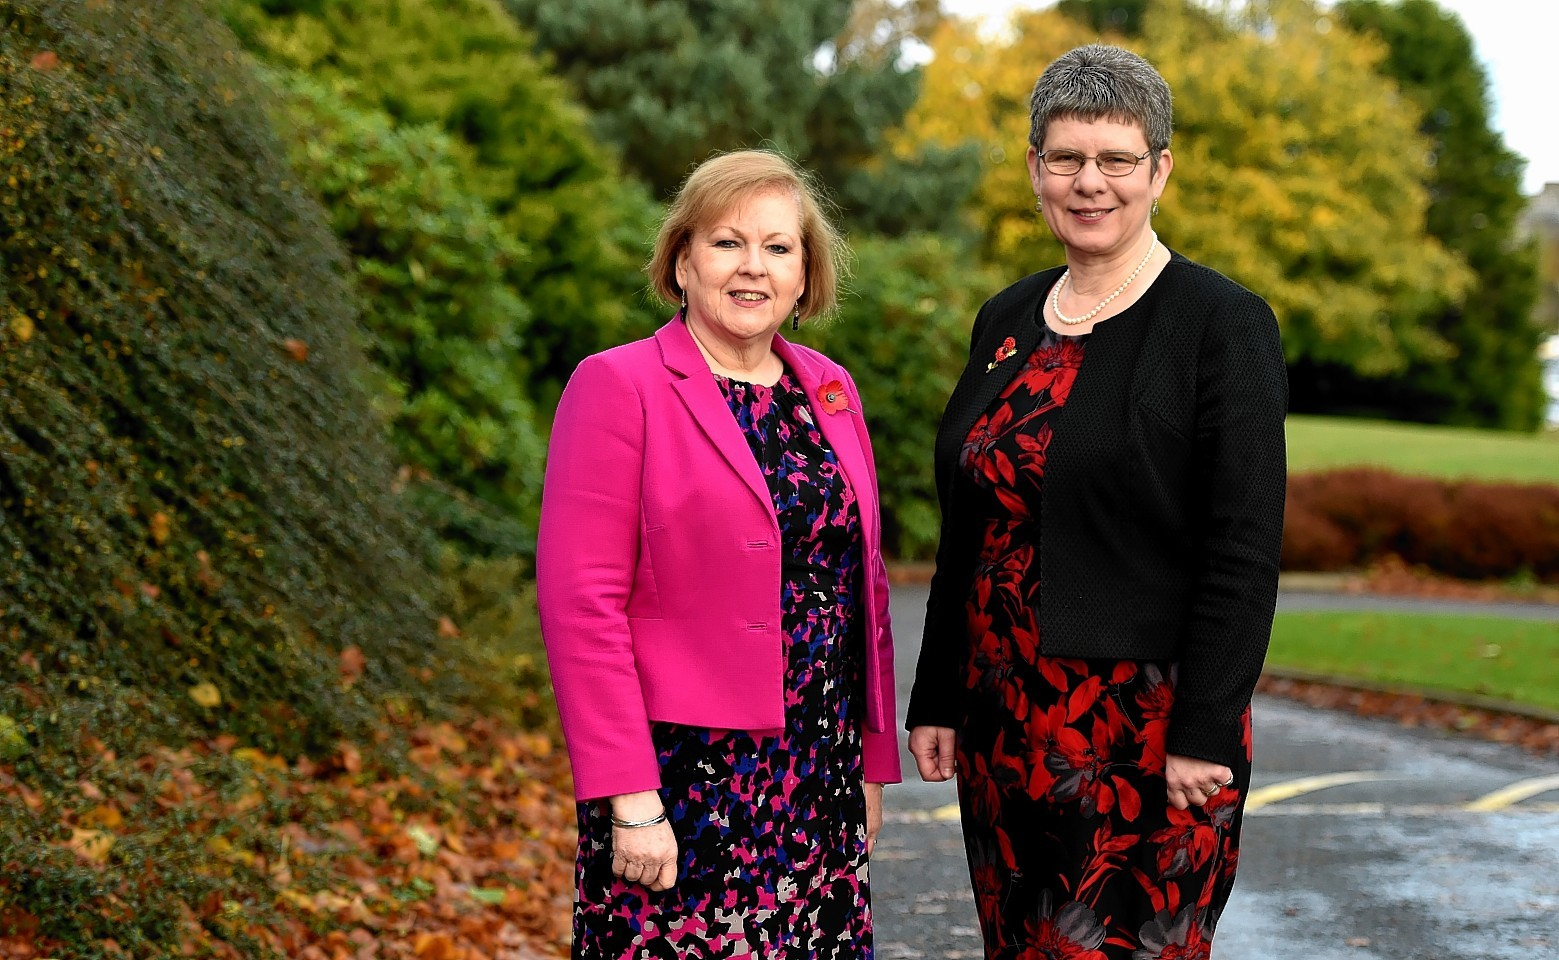 Education chief Maria Walker and council co-leader Alison Evison